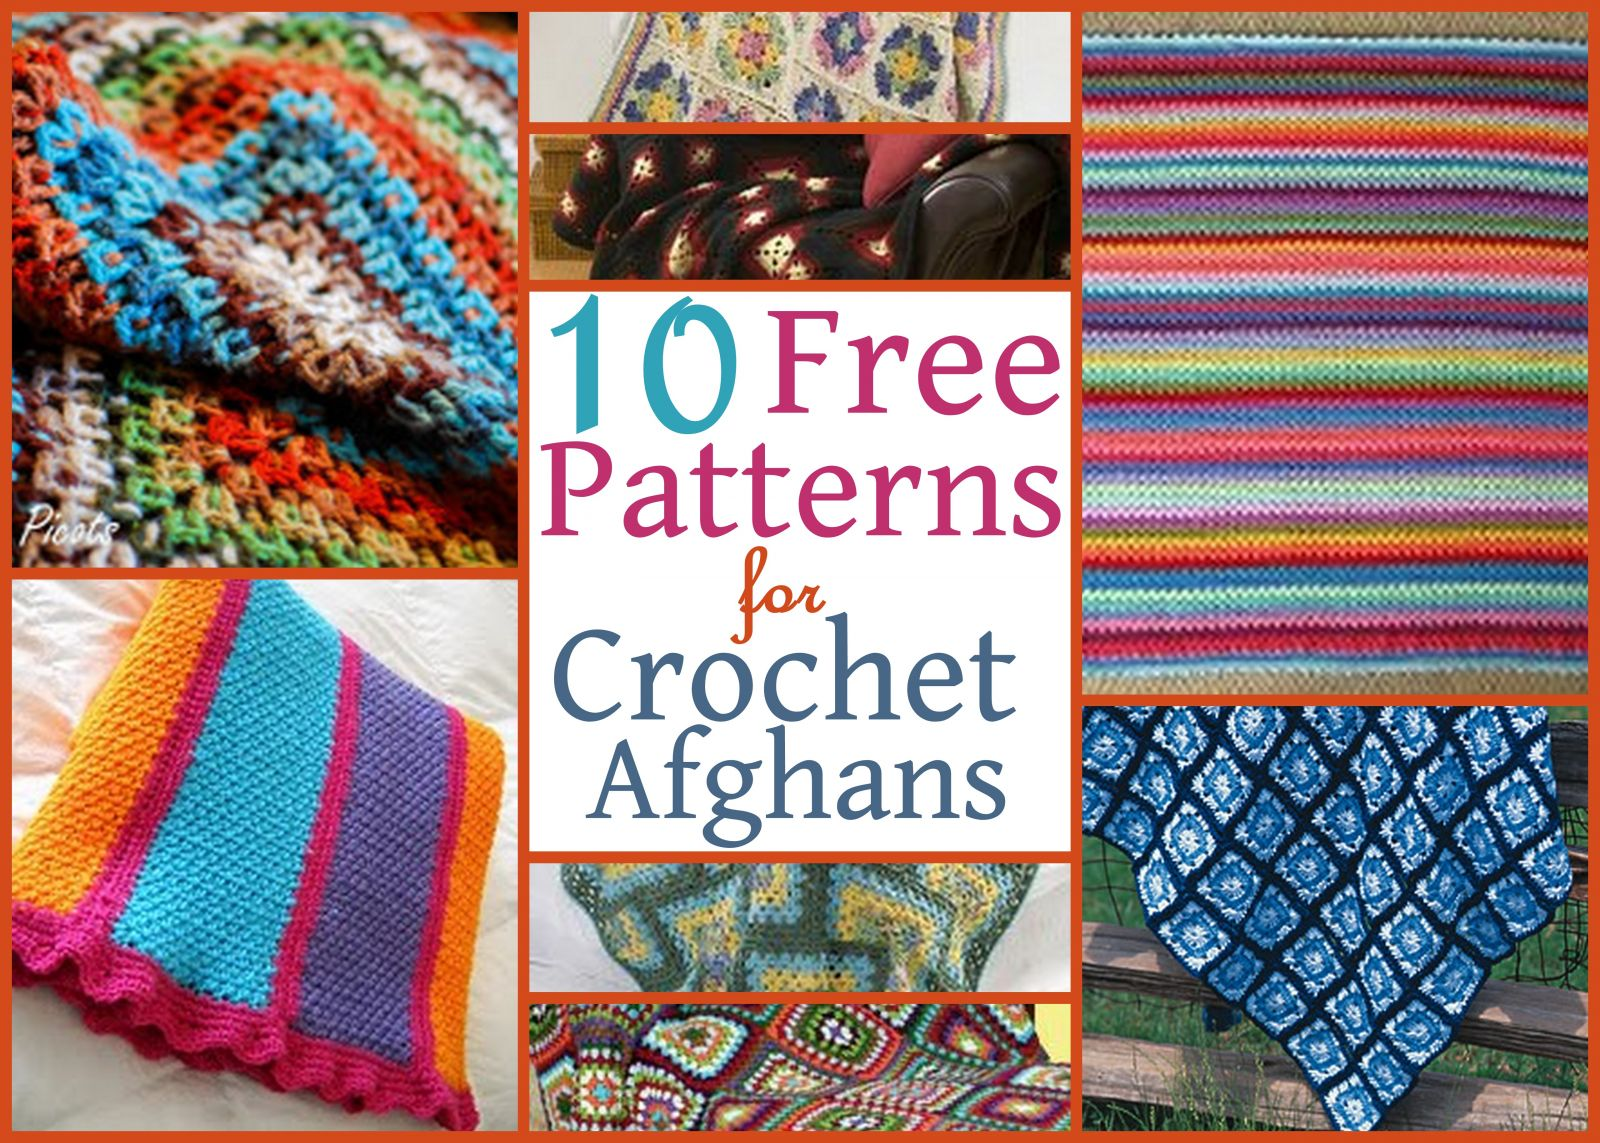 10 Free Patterns for Crochet Afghans | AllFreeCrochetAfghanPatterns.com